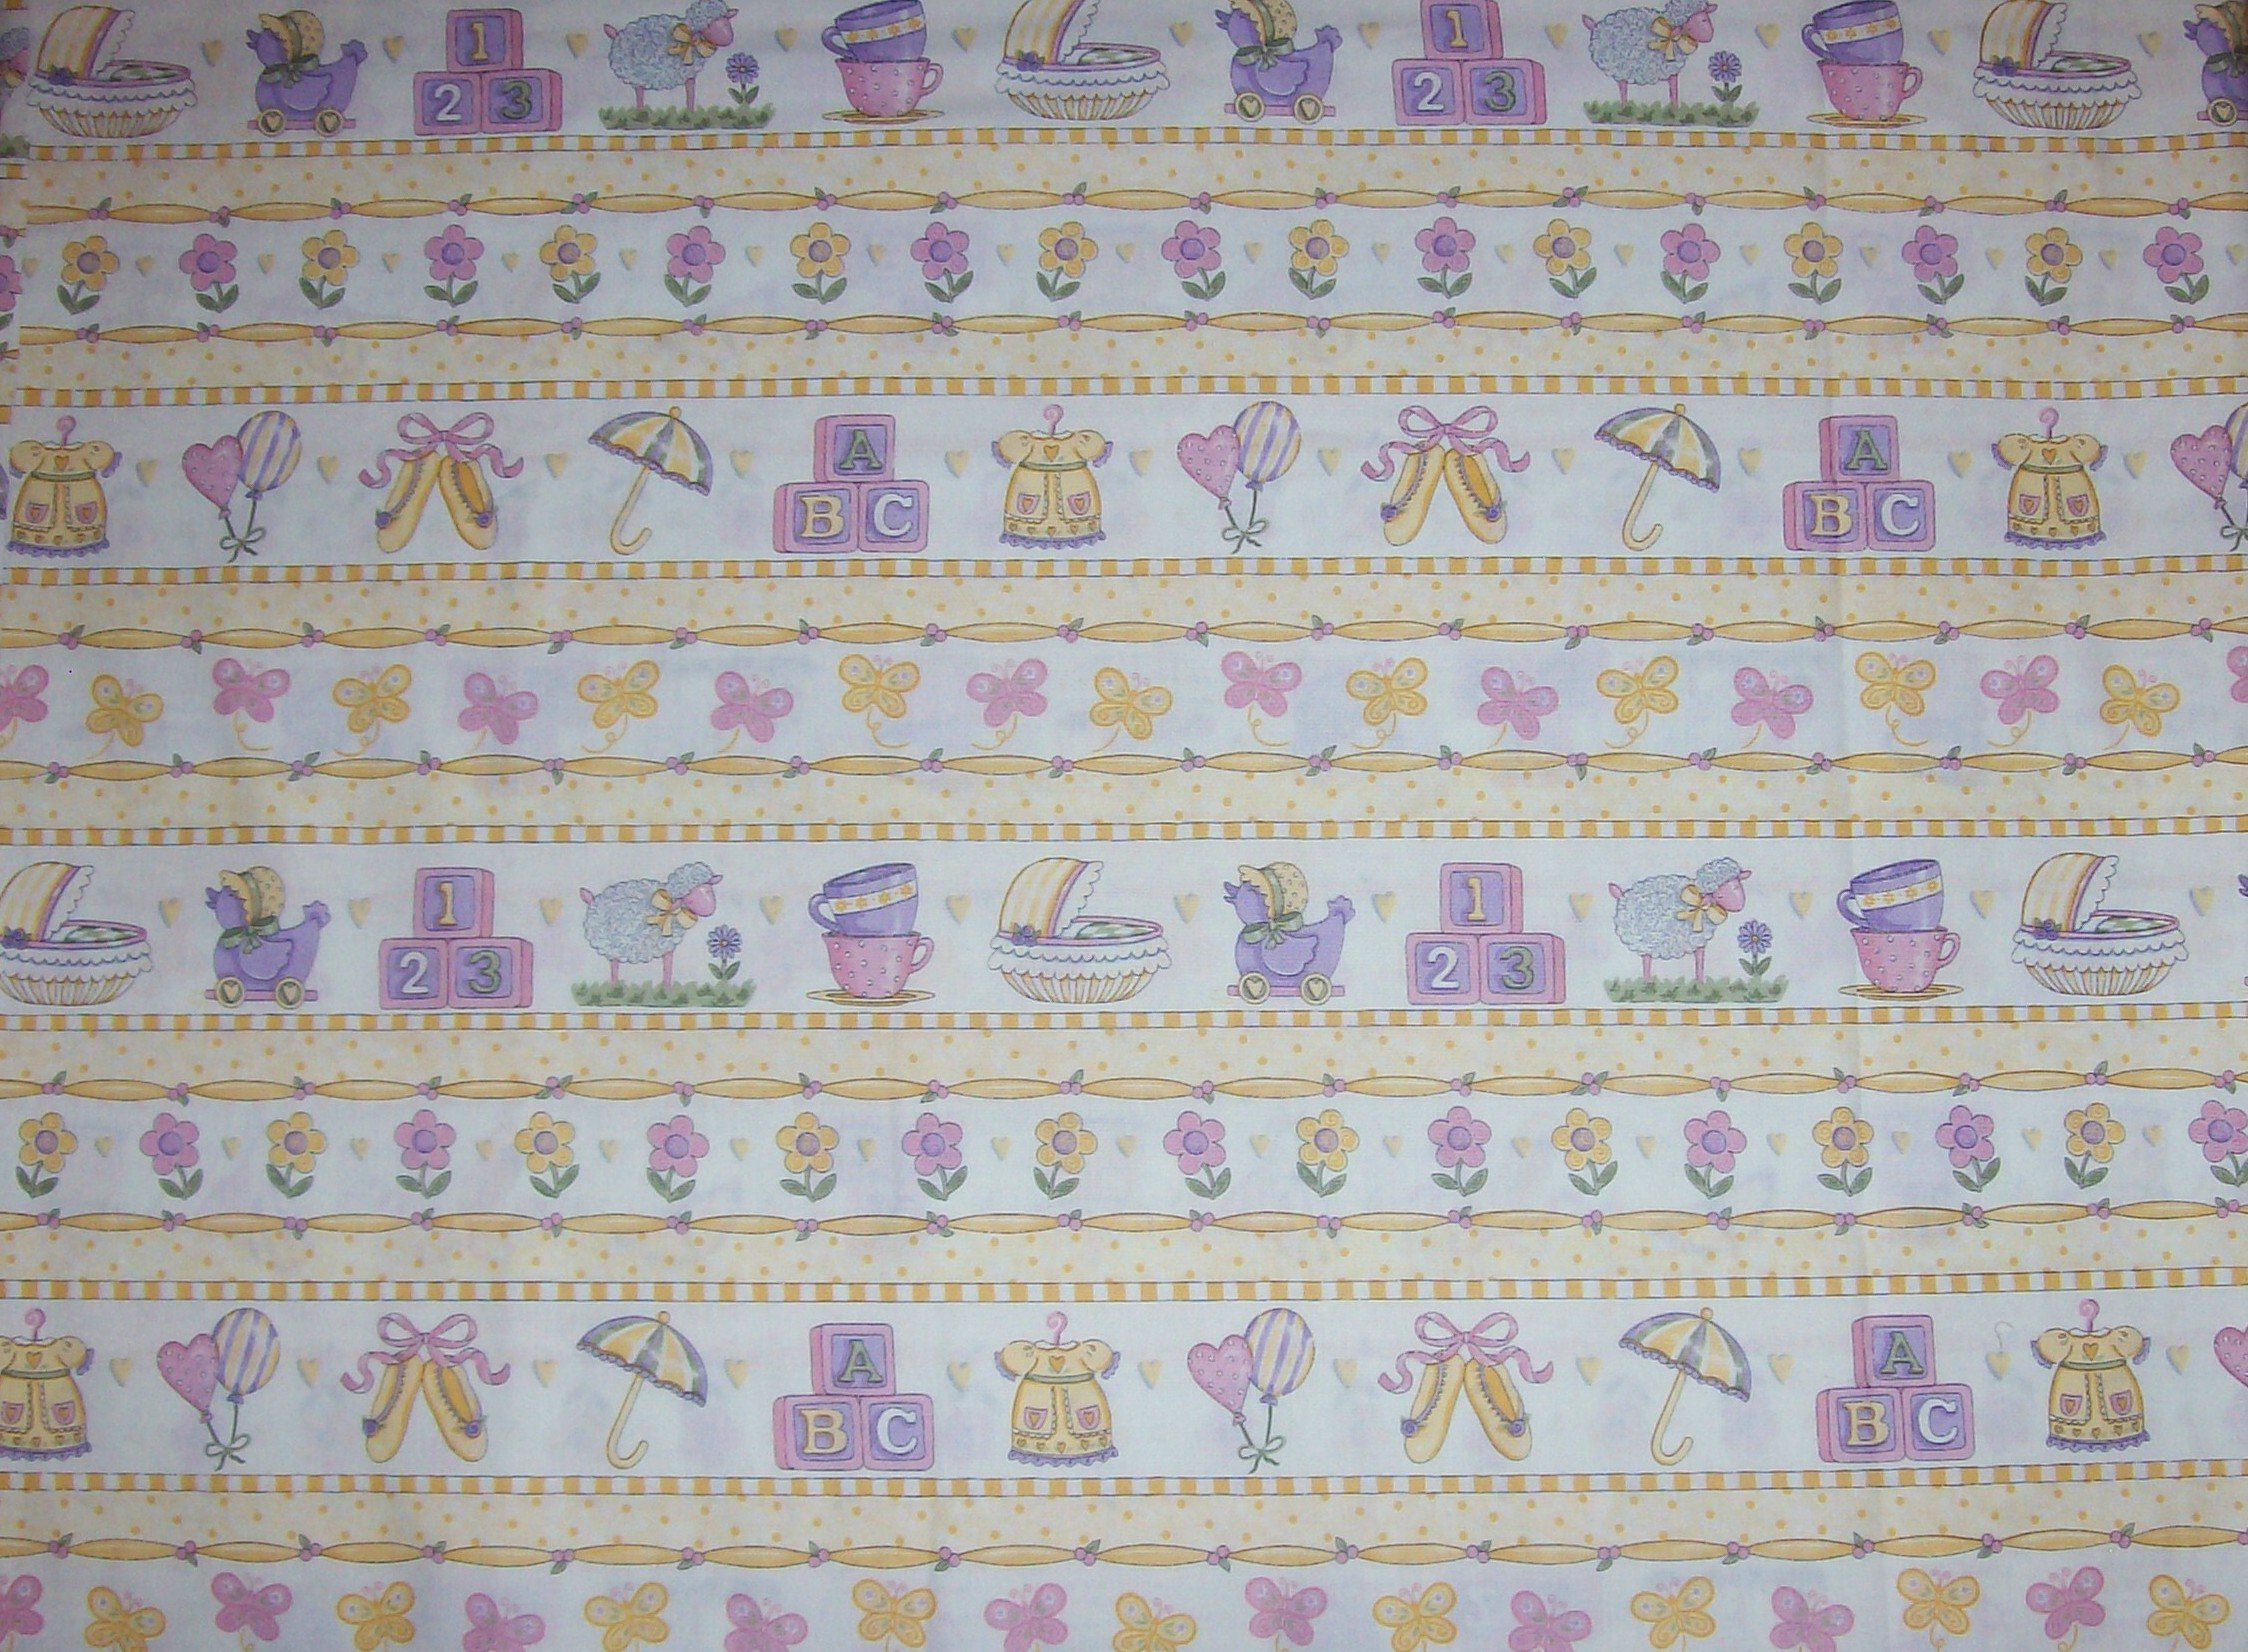 It's A Girl Children's Fabric Yardage by Deb Strain for Moda